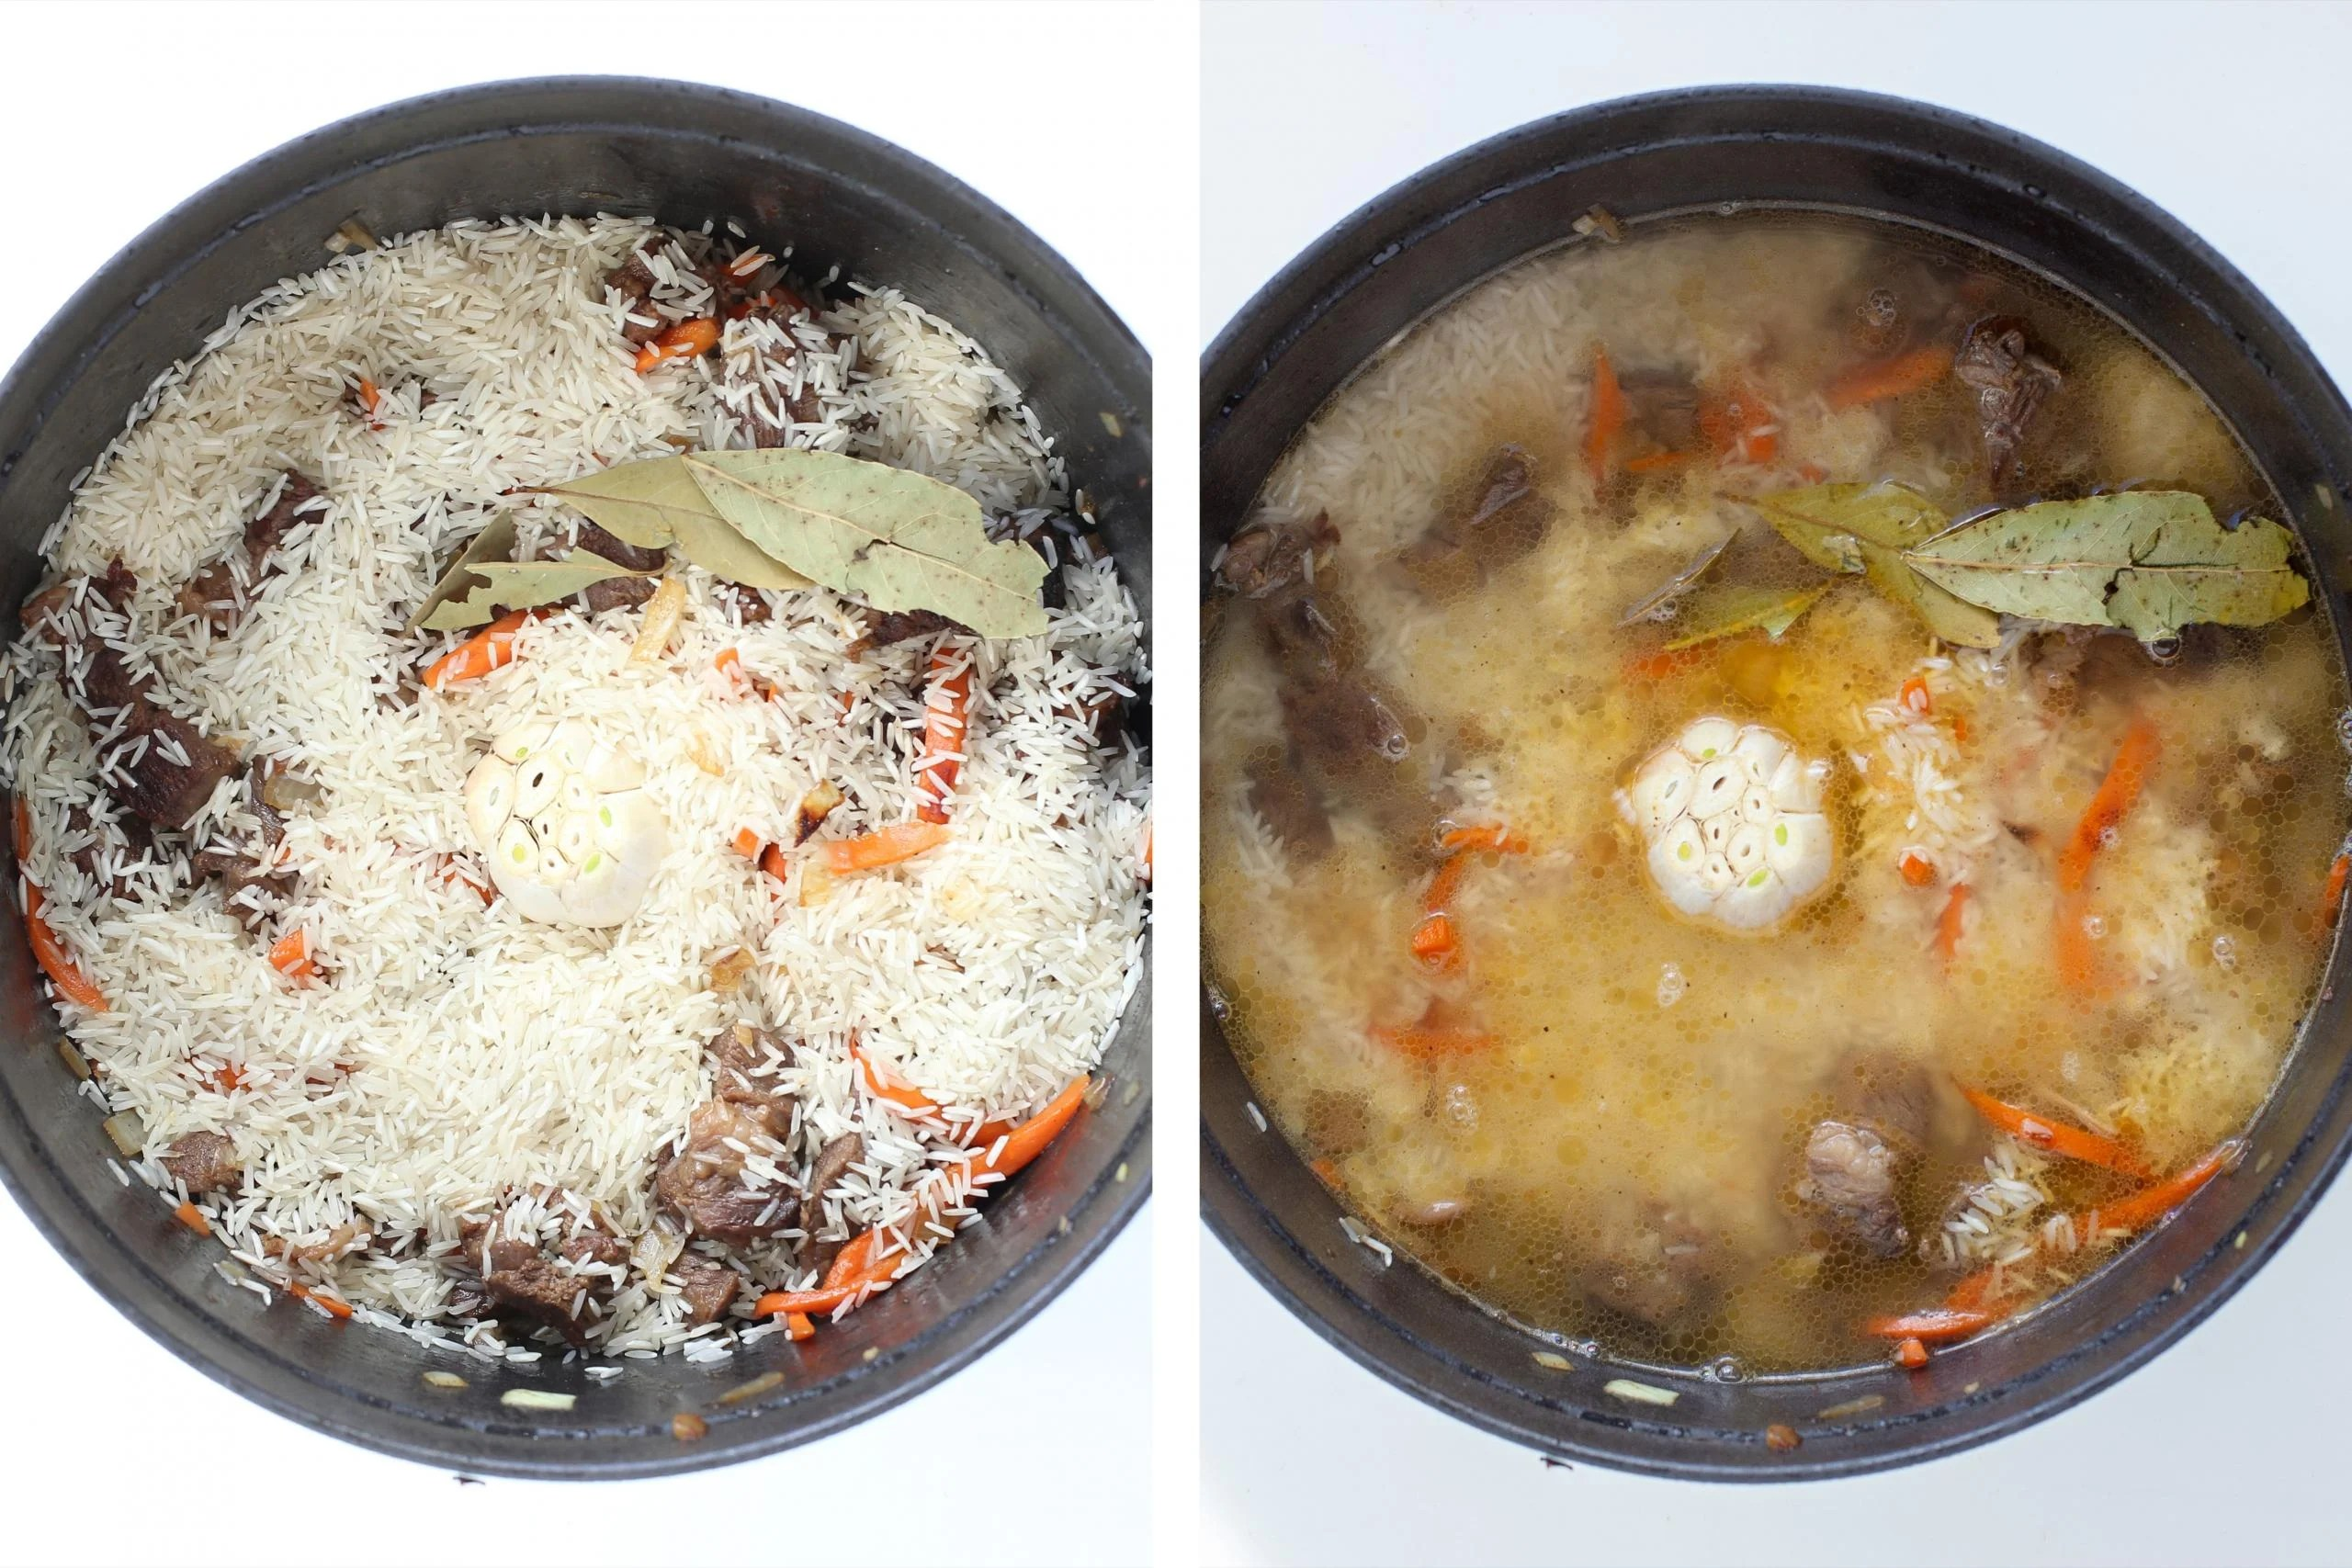 Pot with rice and veggies and liquid